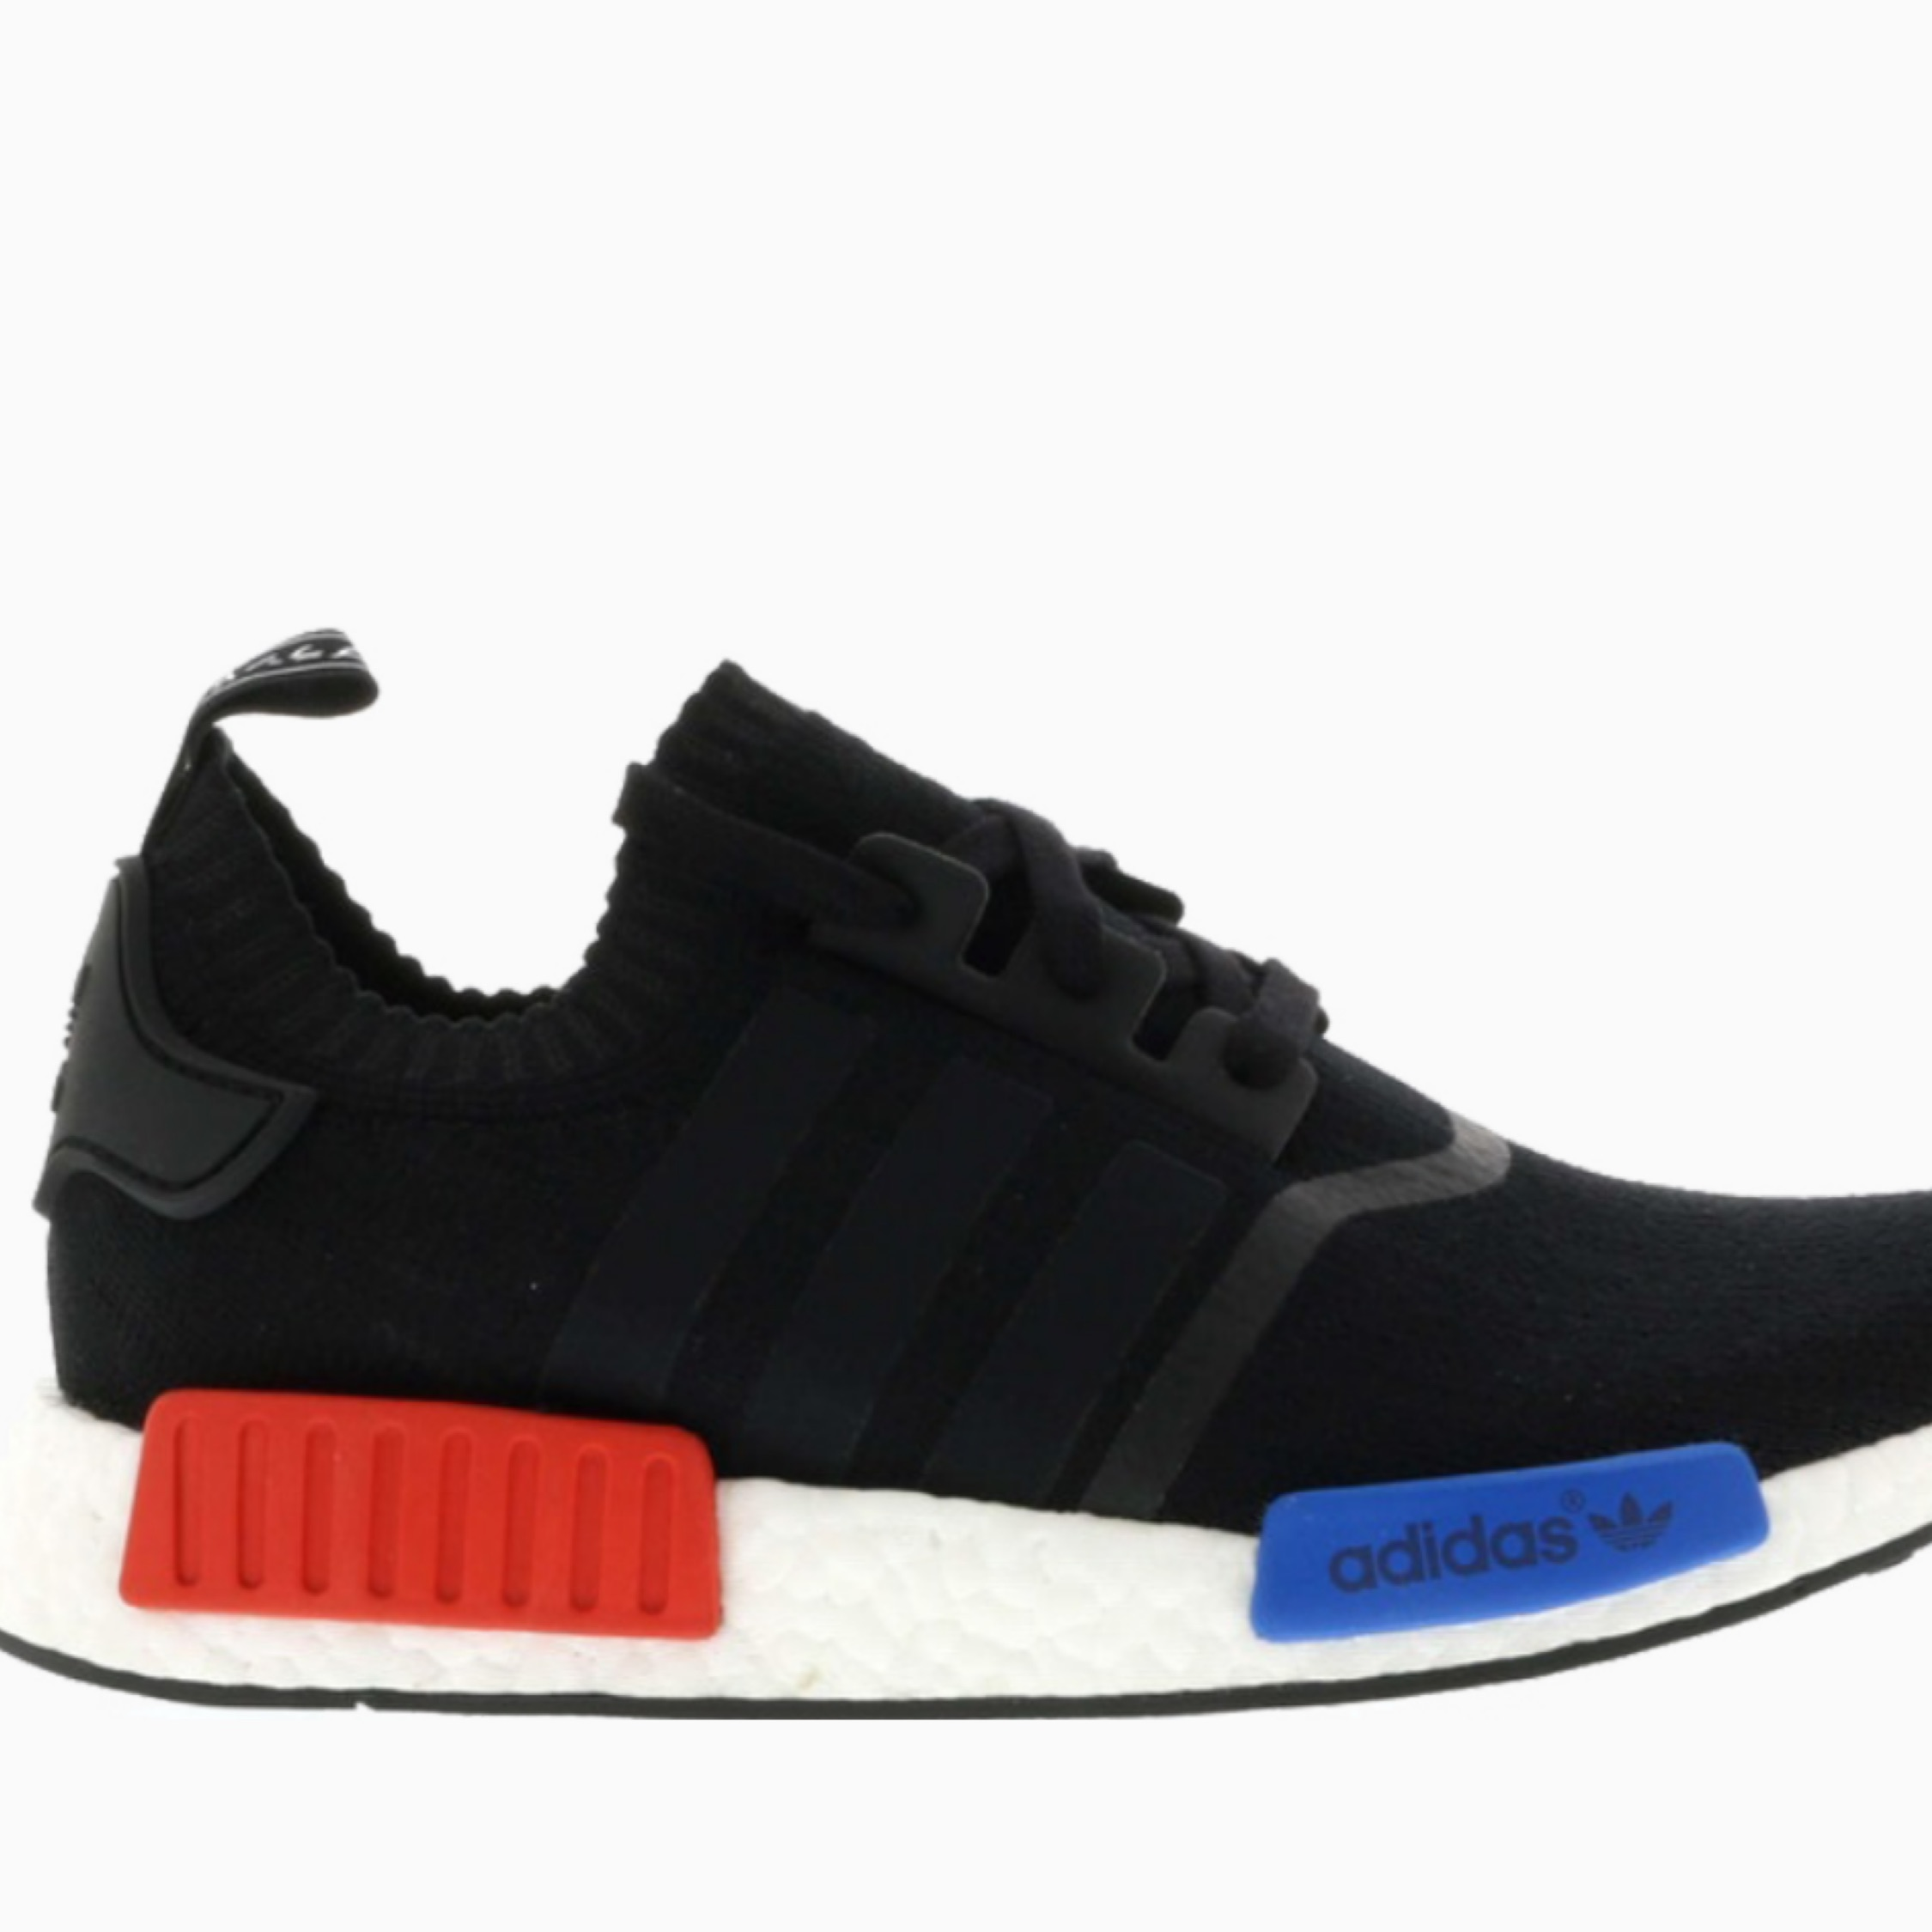 meet 85fcb 0cb1a Adidas Nmd R1 Core Black Lush Red (2015/2017)